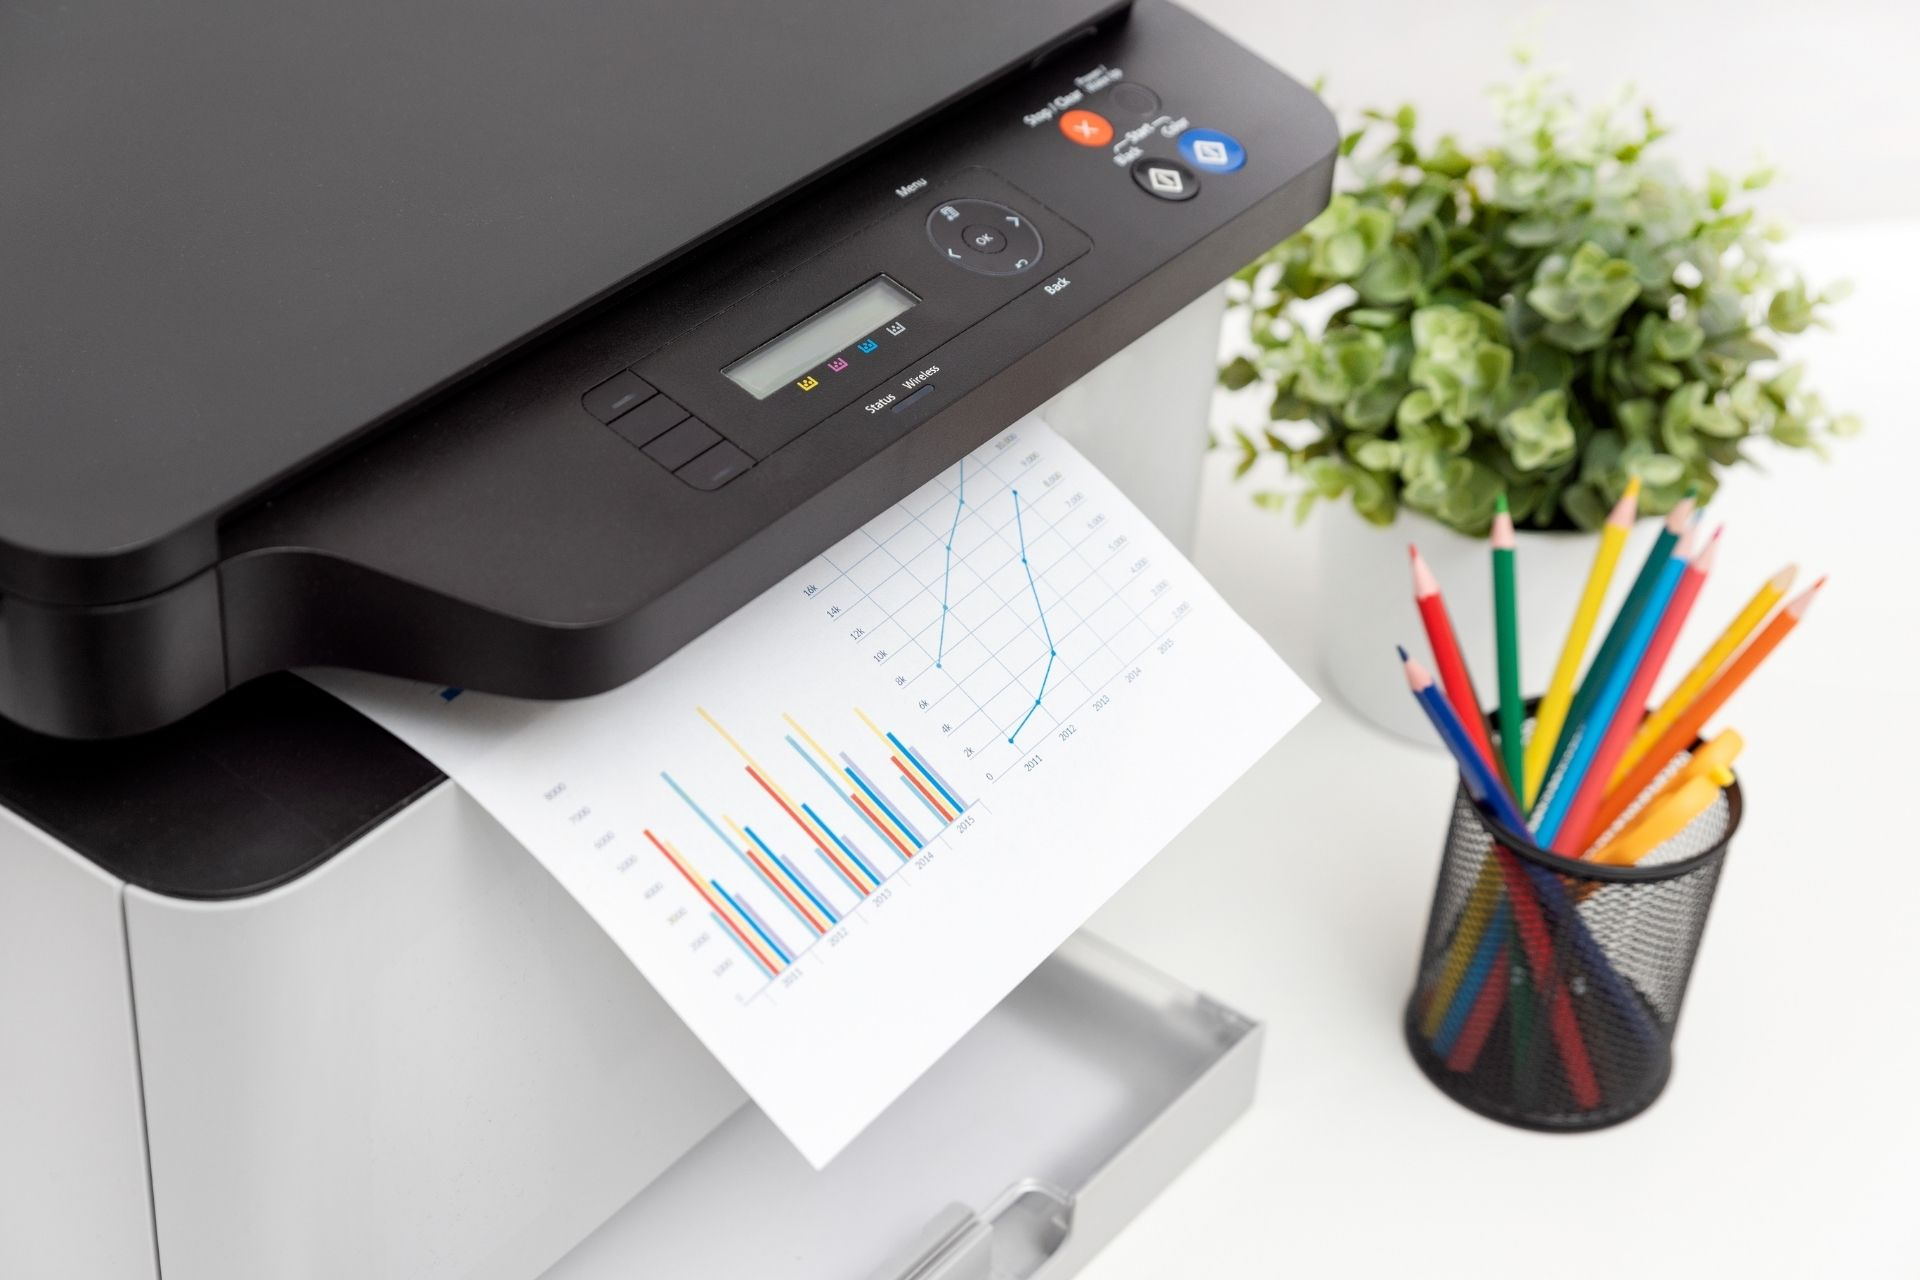 A printer next to a pencil holder and a plant